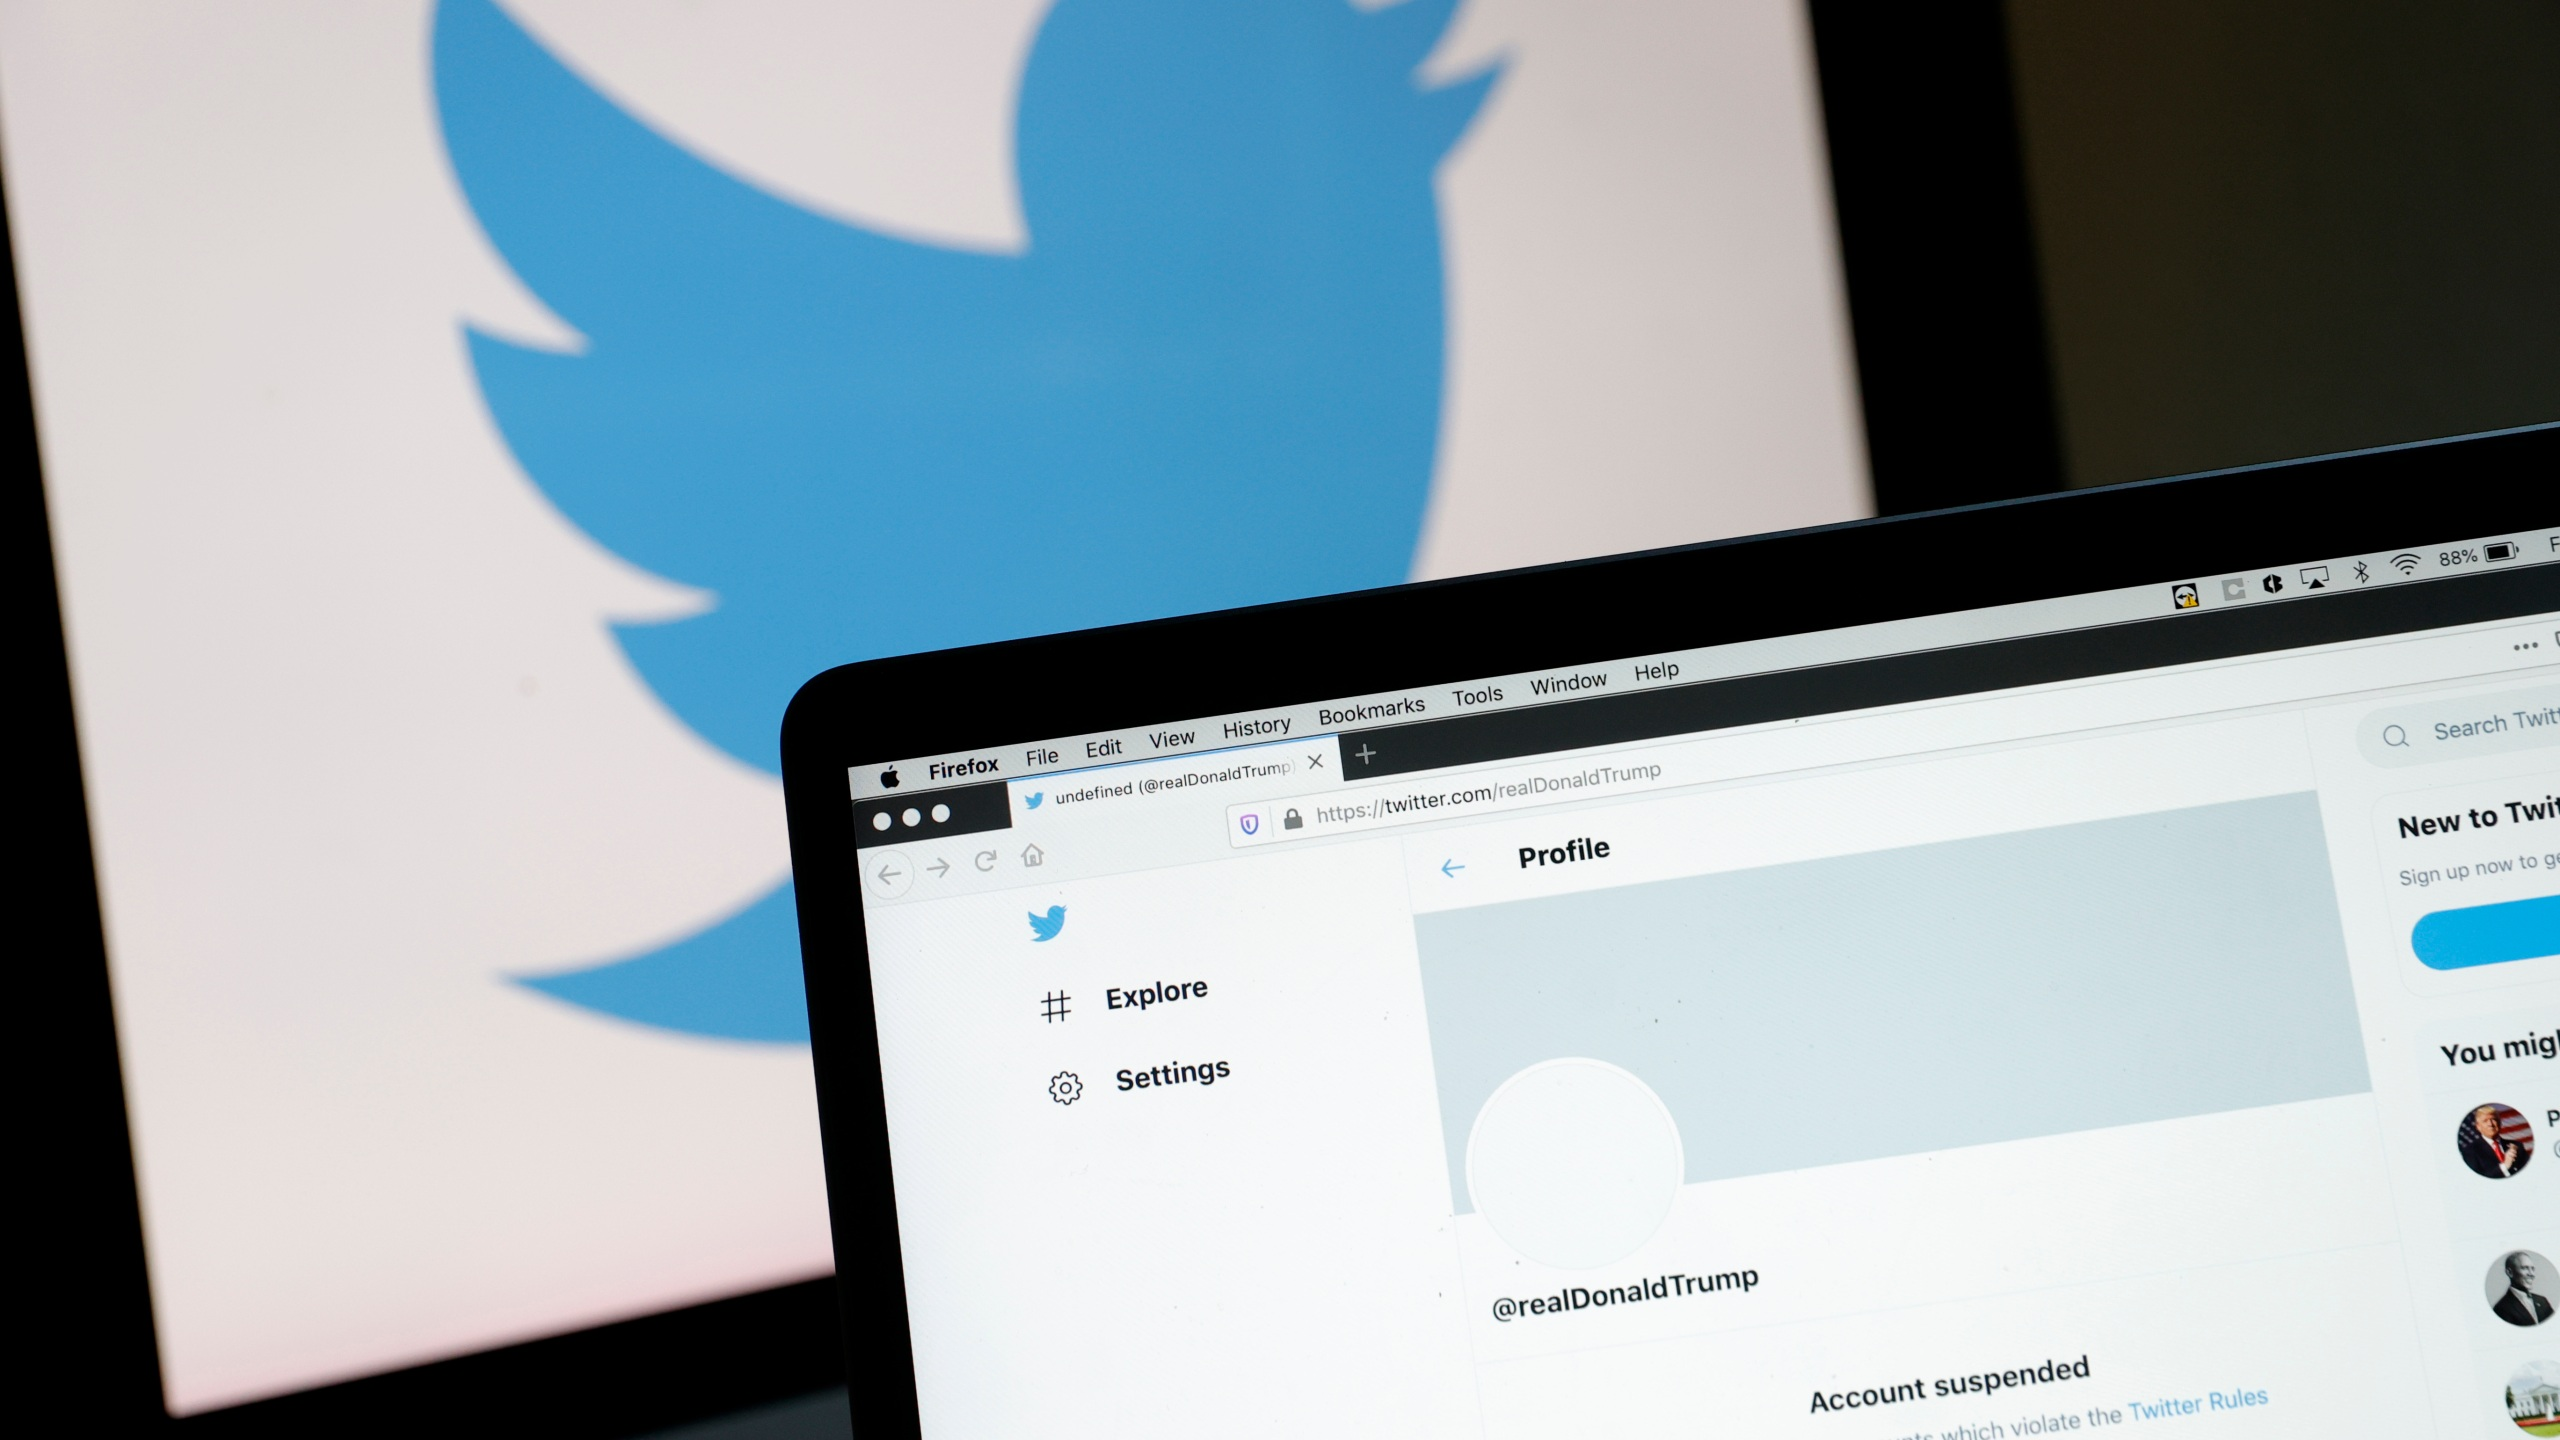 The suspended Twitter account of U.S. President Donald Trump appears on a laptop screen on January 08, 2021 in San Anselmo, California. (Photo Illustration by Justin Sullivan/Getty Images)